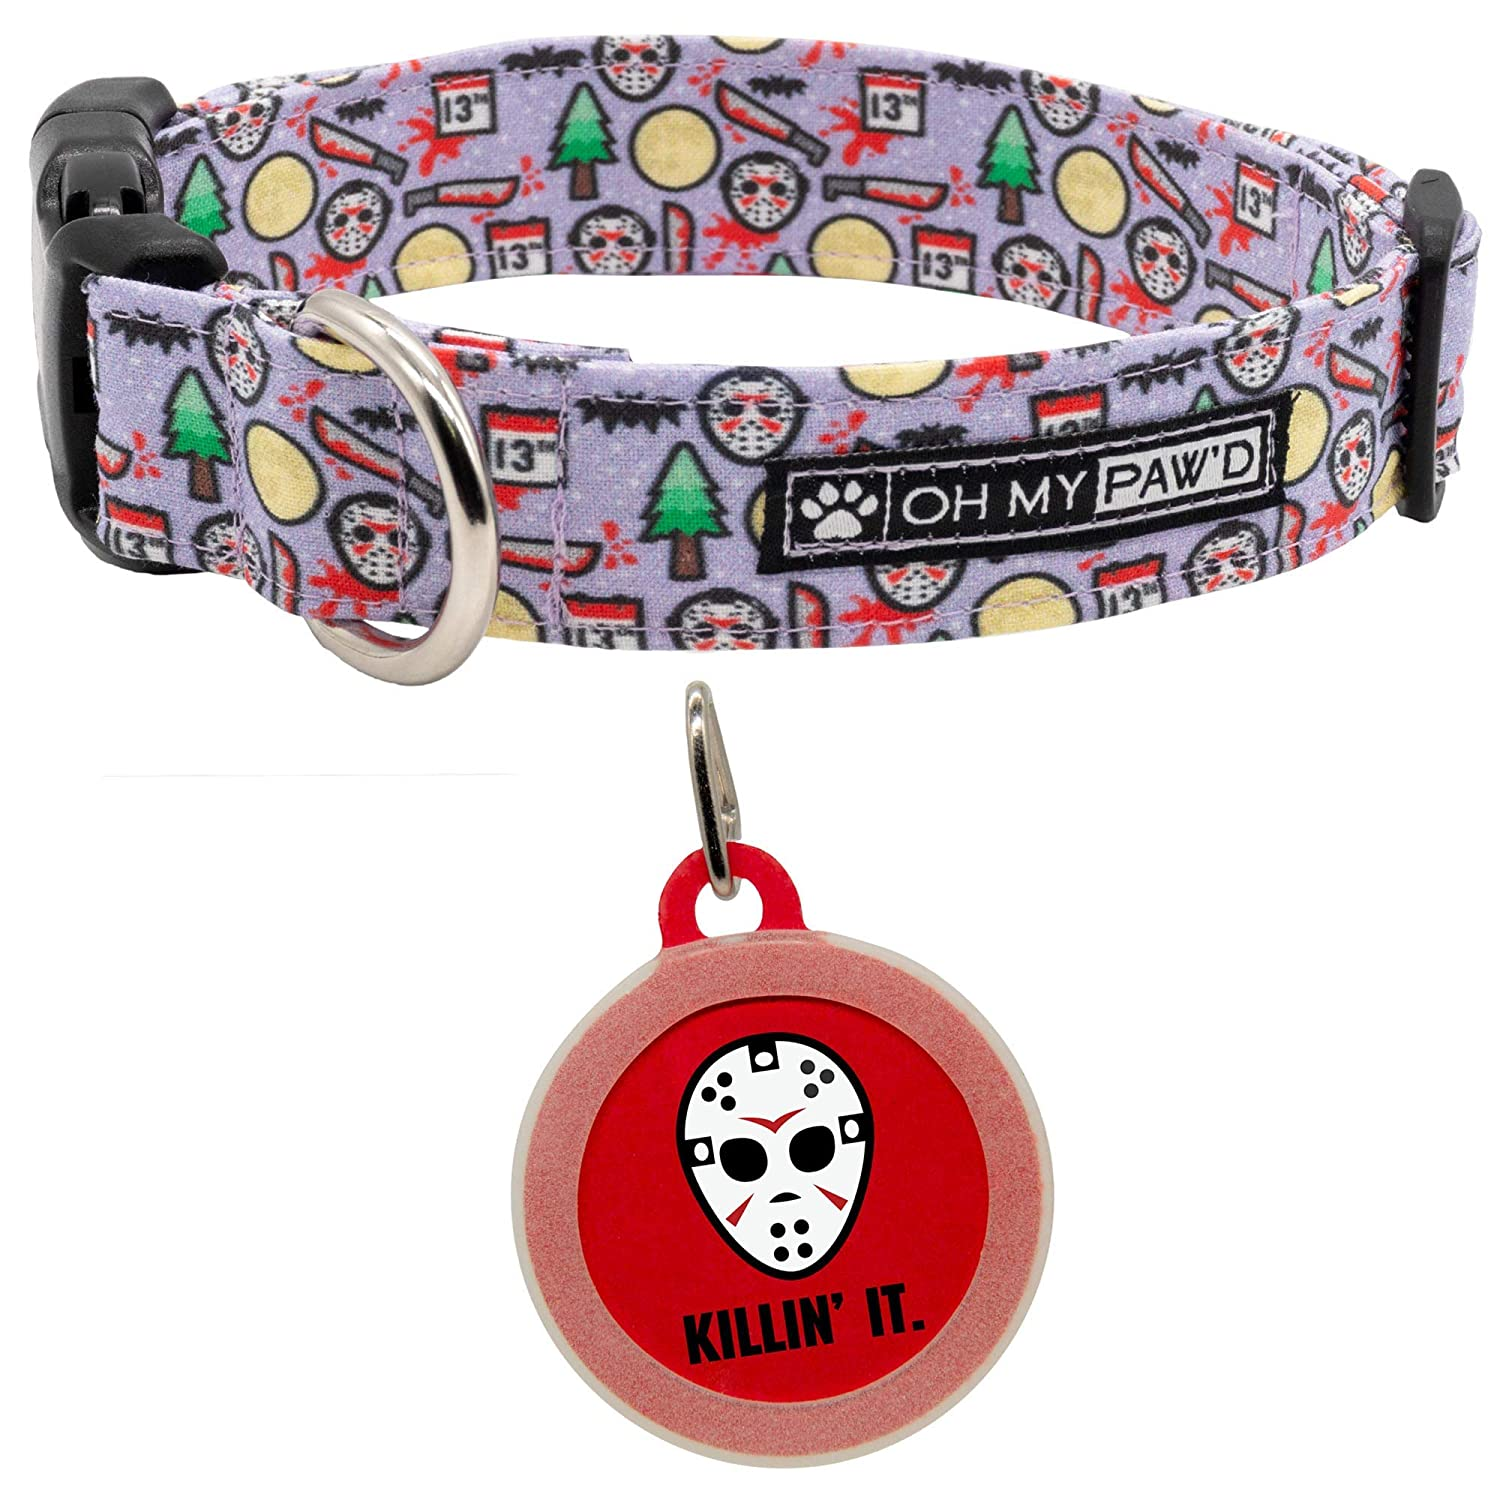 Hand Made Dog Collar by Oh My Pawd Friday the 13th Collar for Pets Size Small 3//4 Inch Wide and 12-17 Inches Long